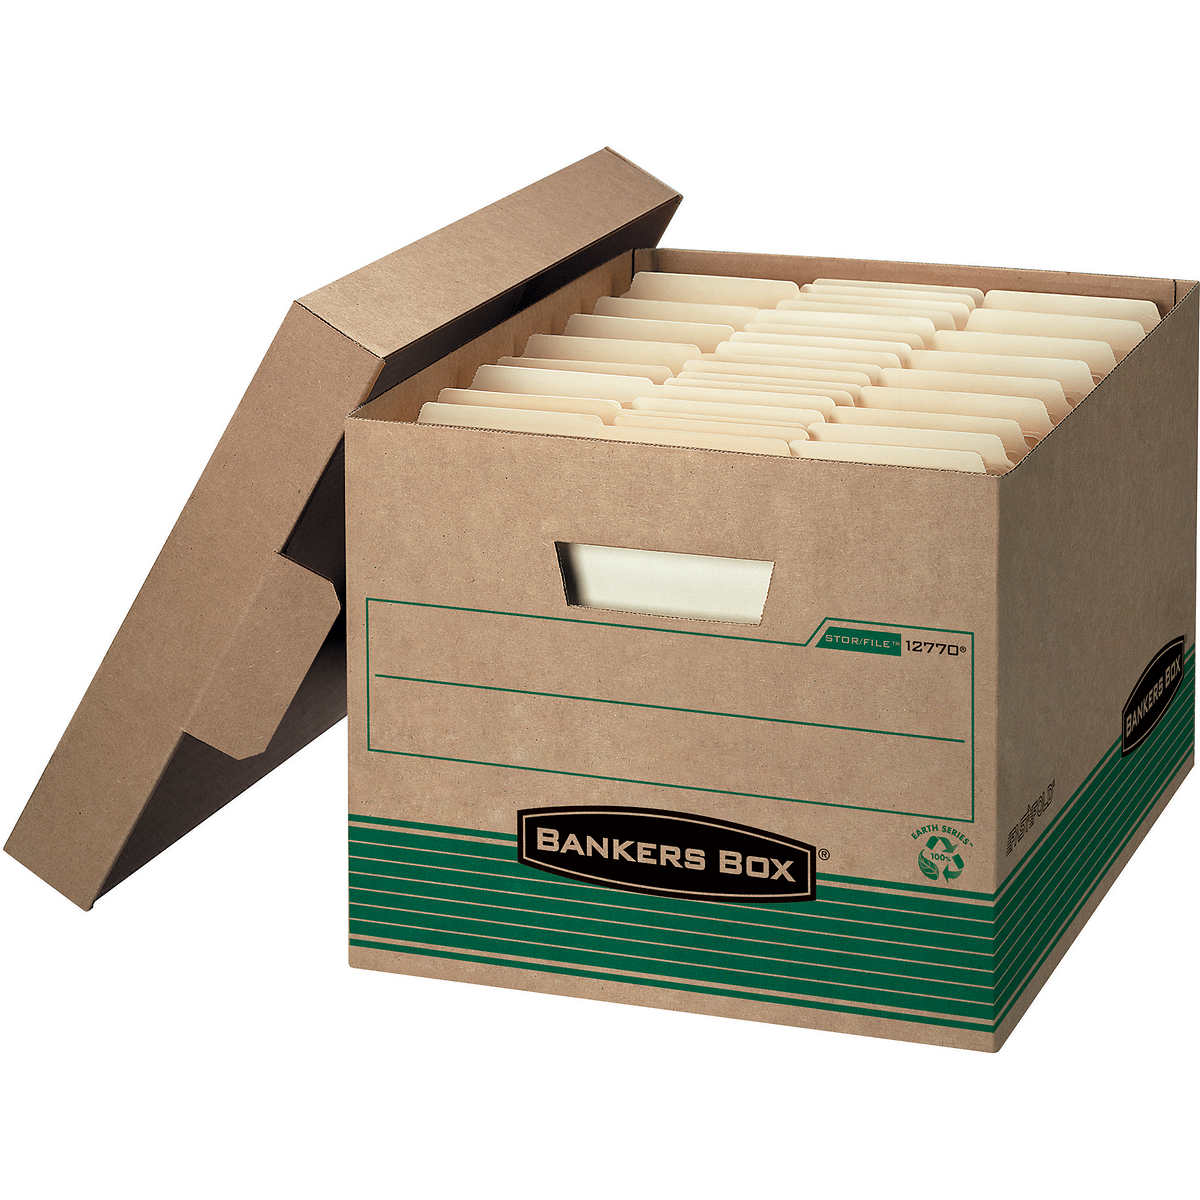 bankers box econo storagefile with locking lid kraft 12ct boxes stack office file